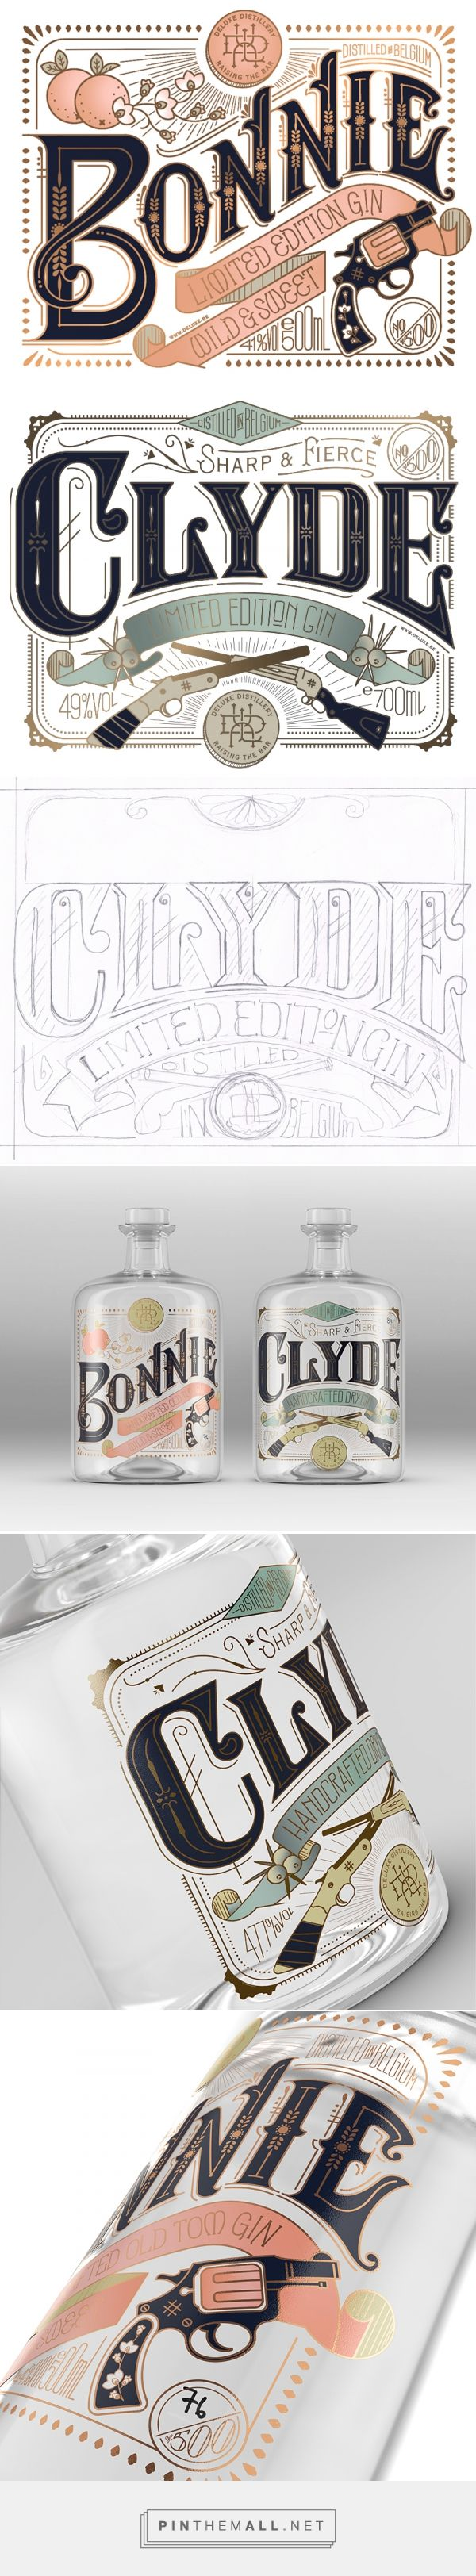 Bonnie & Clyde         on          Packaging of the World - Creative Package Design Gallery  http://www.packagingoftheworld.com/2016/05/bonnie-clyde.html - created via https://pinthemall.net